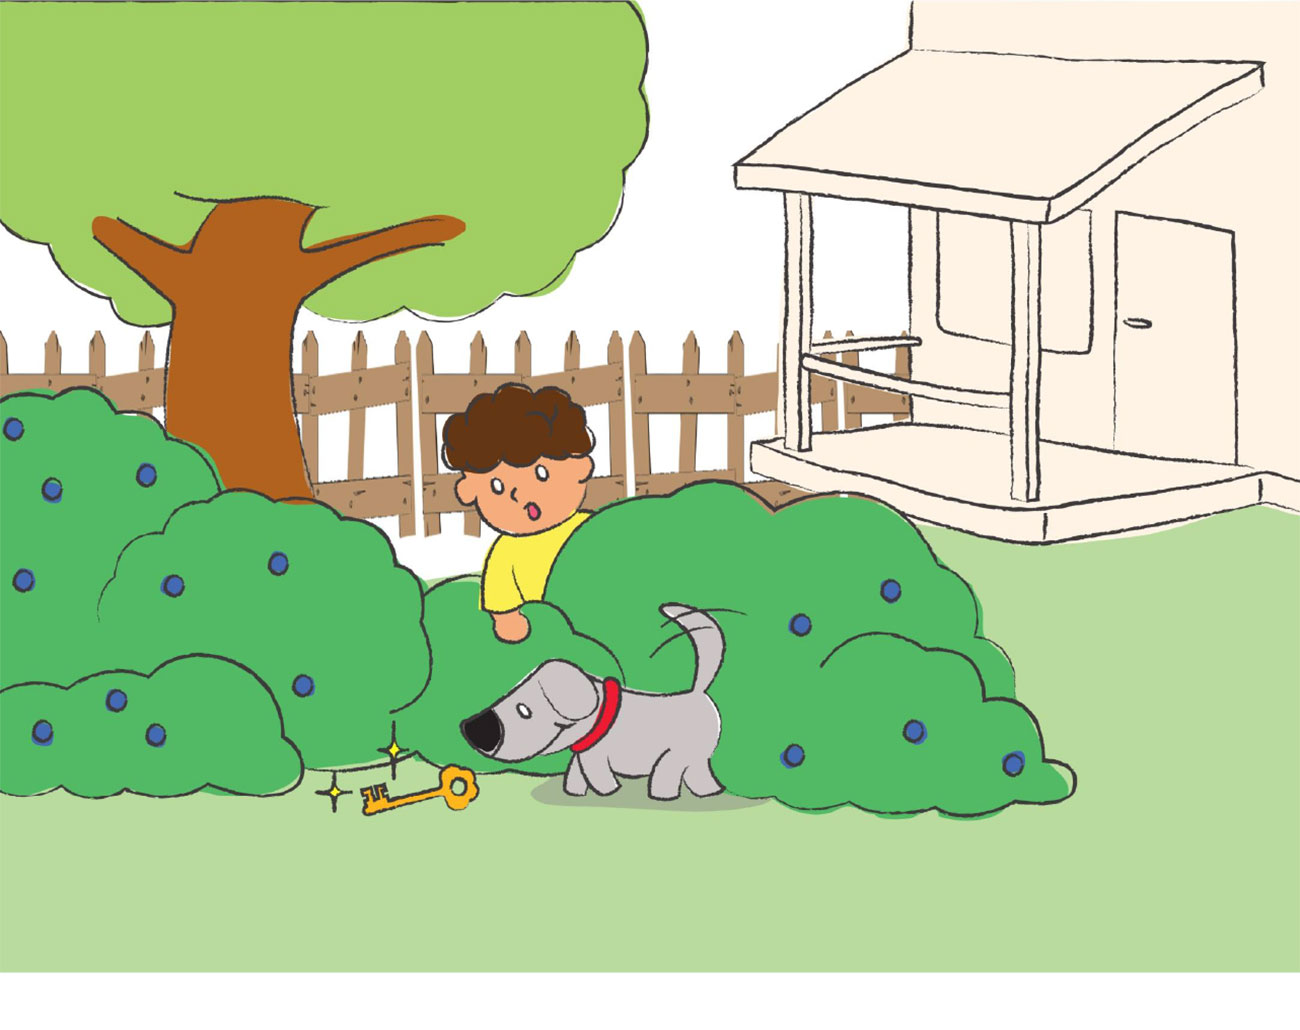 kids short story 'Down the memory lane with nash' by uma bala devarakonda - page 3